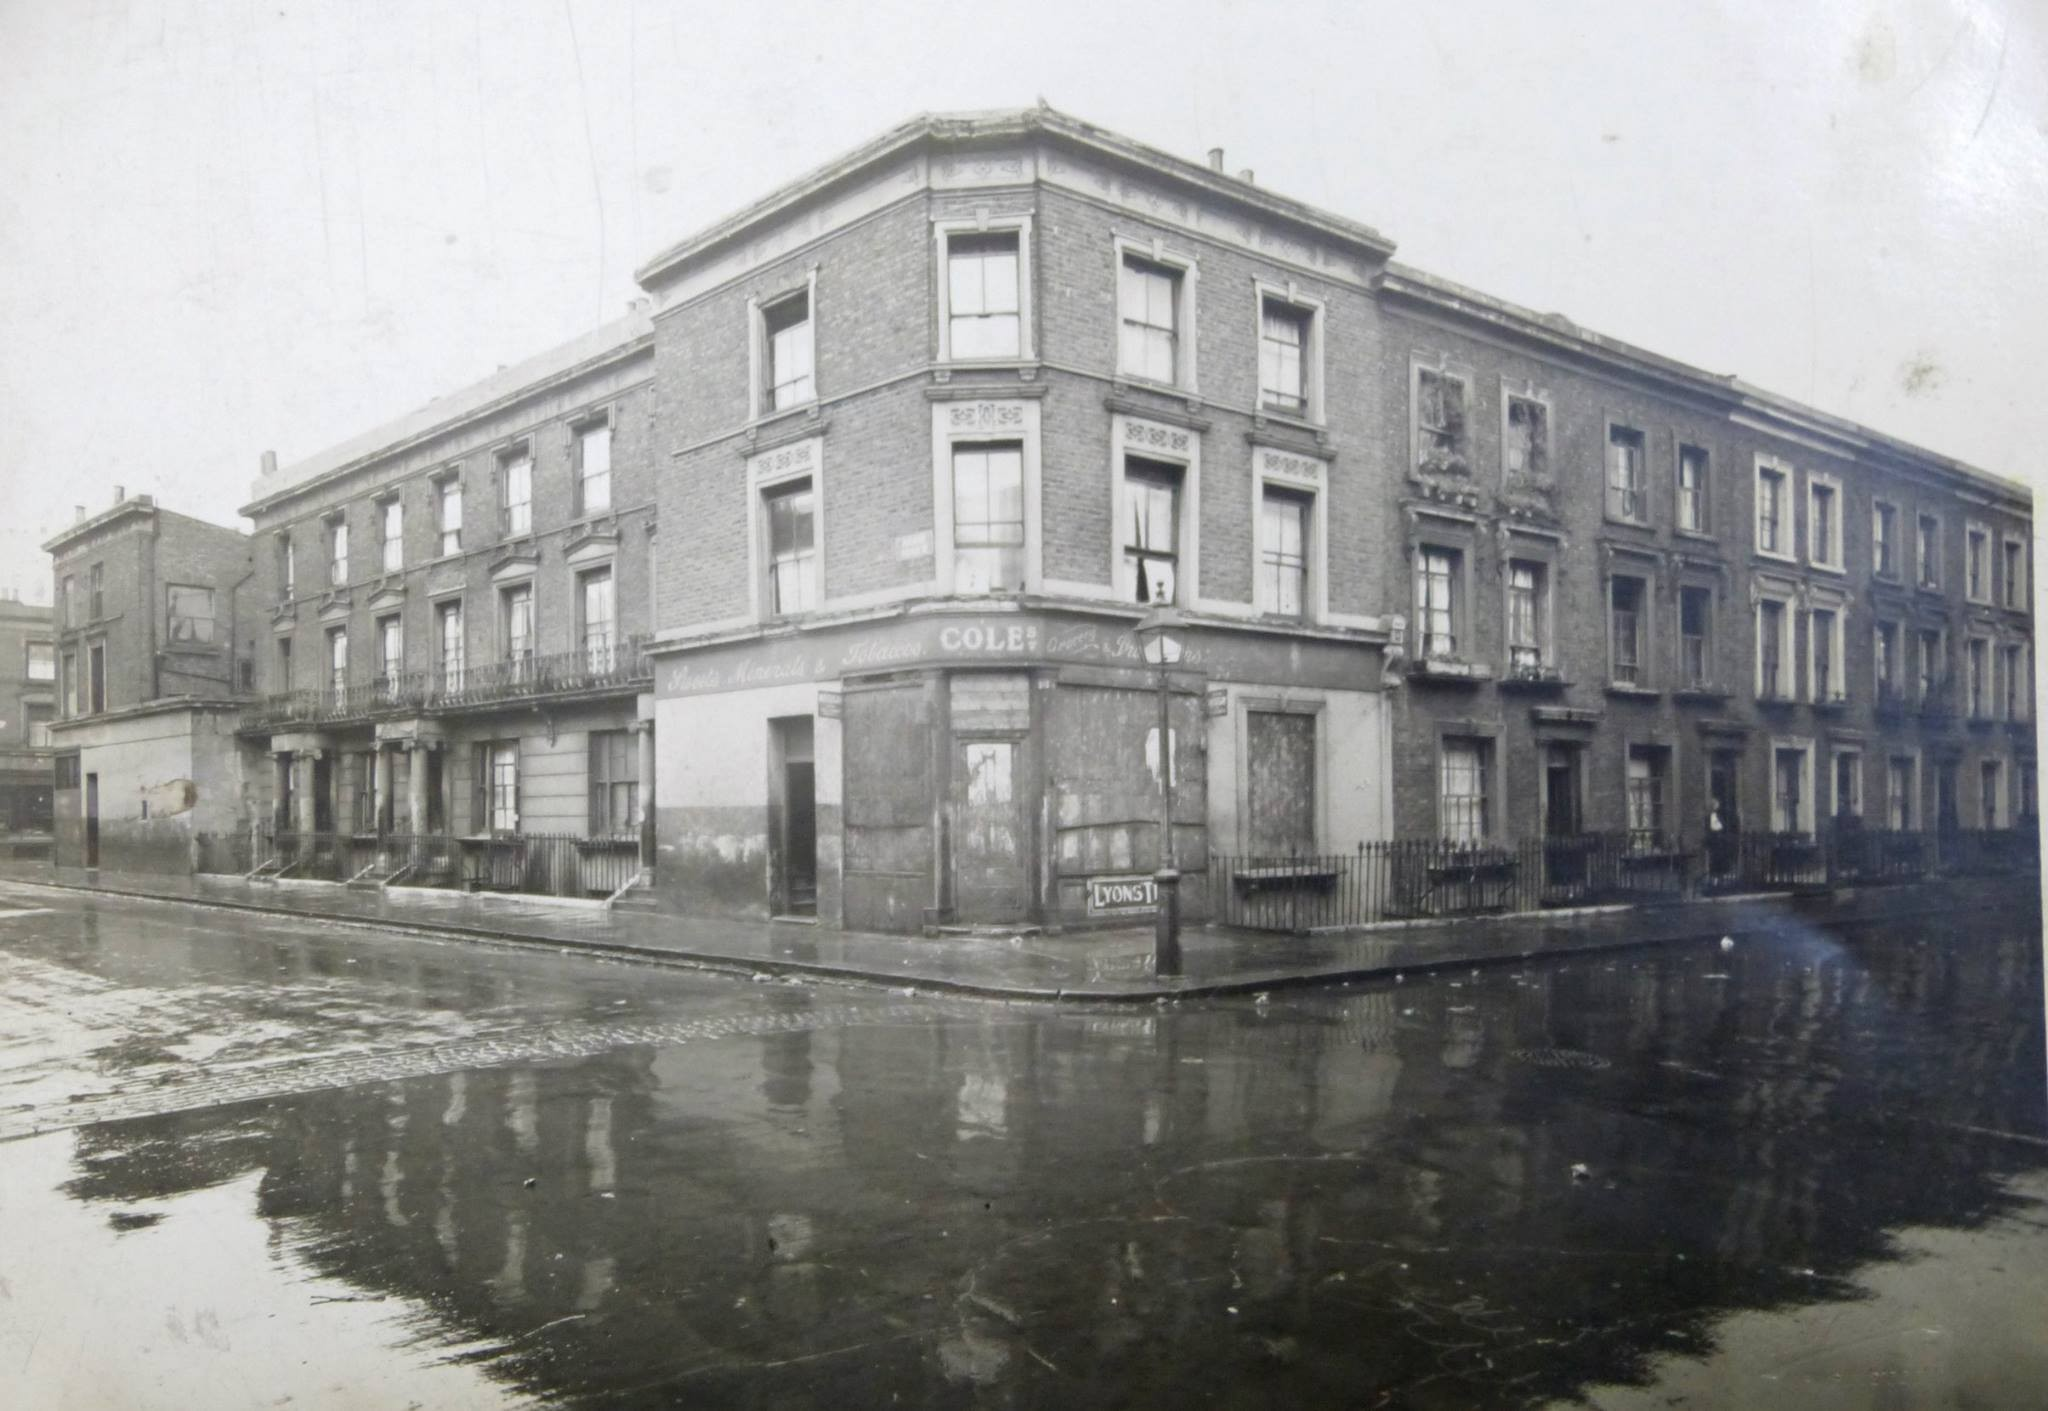 Adair Road junction with Southam Street (1932)